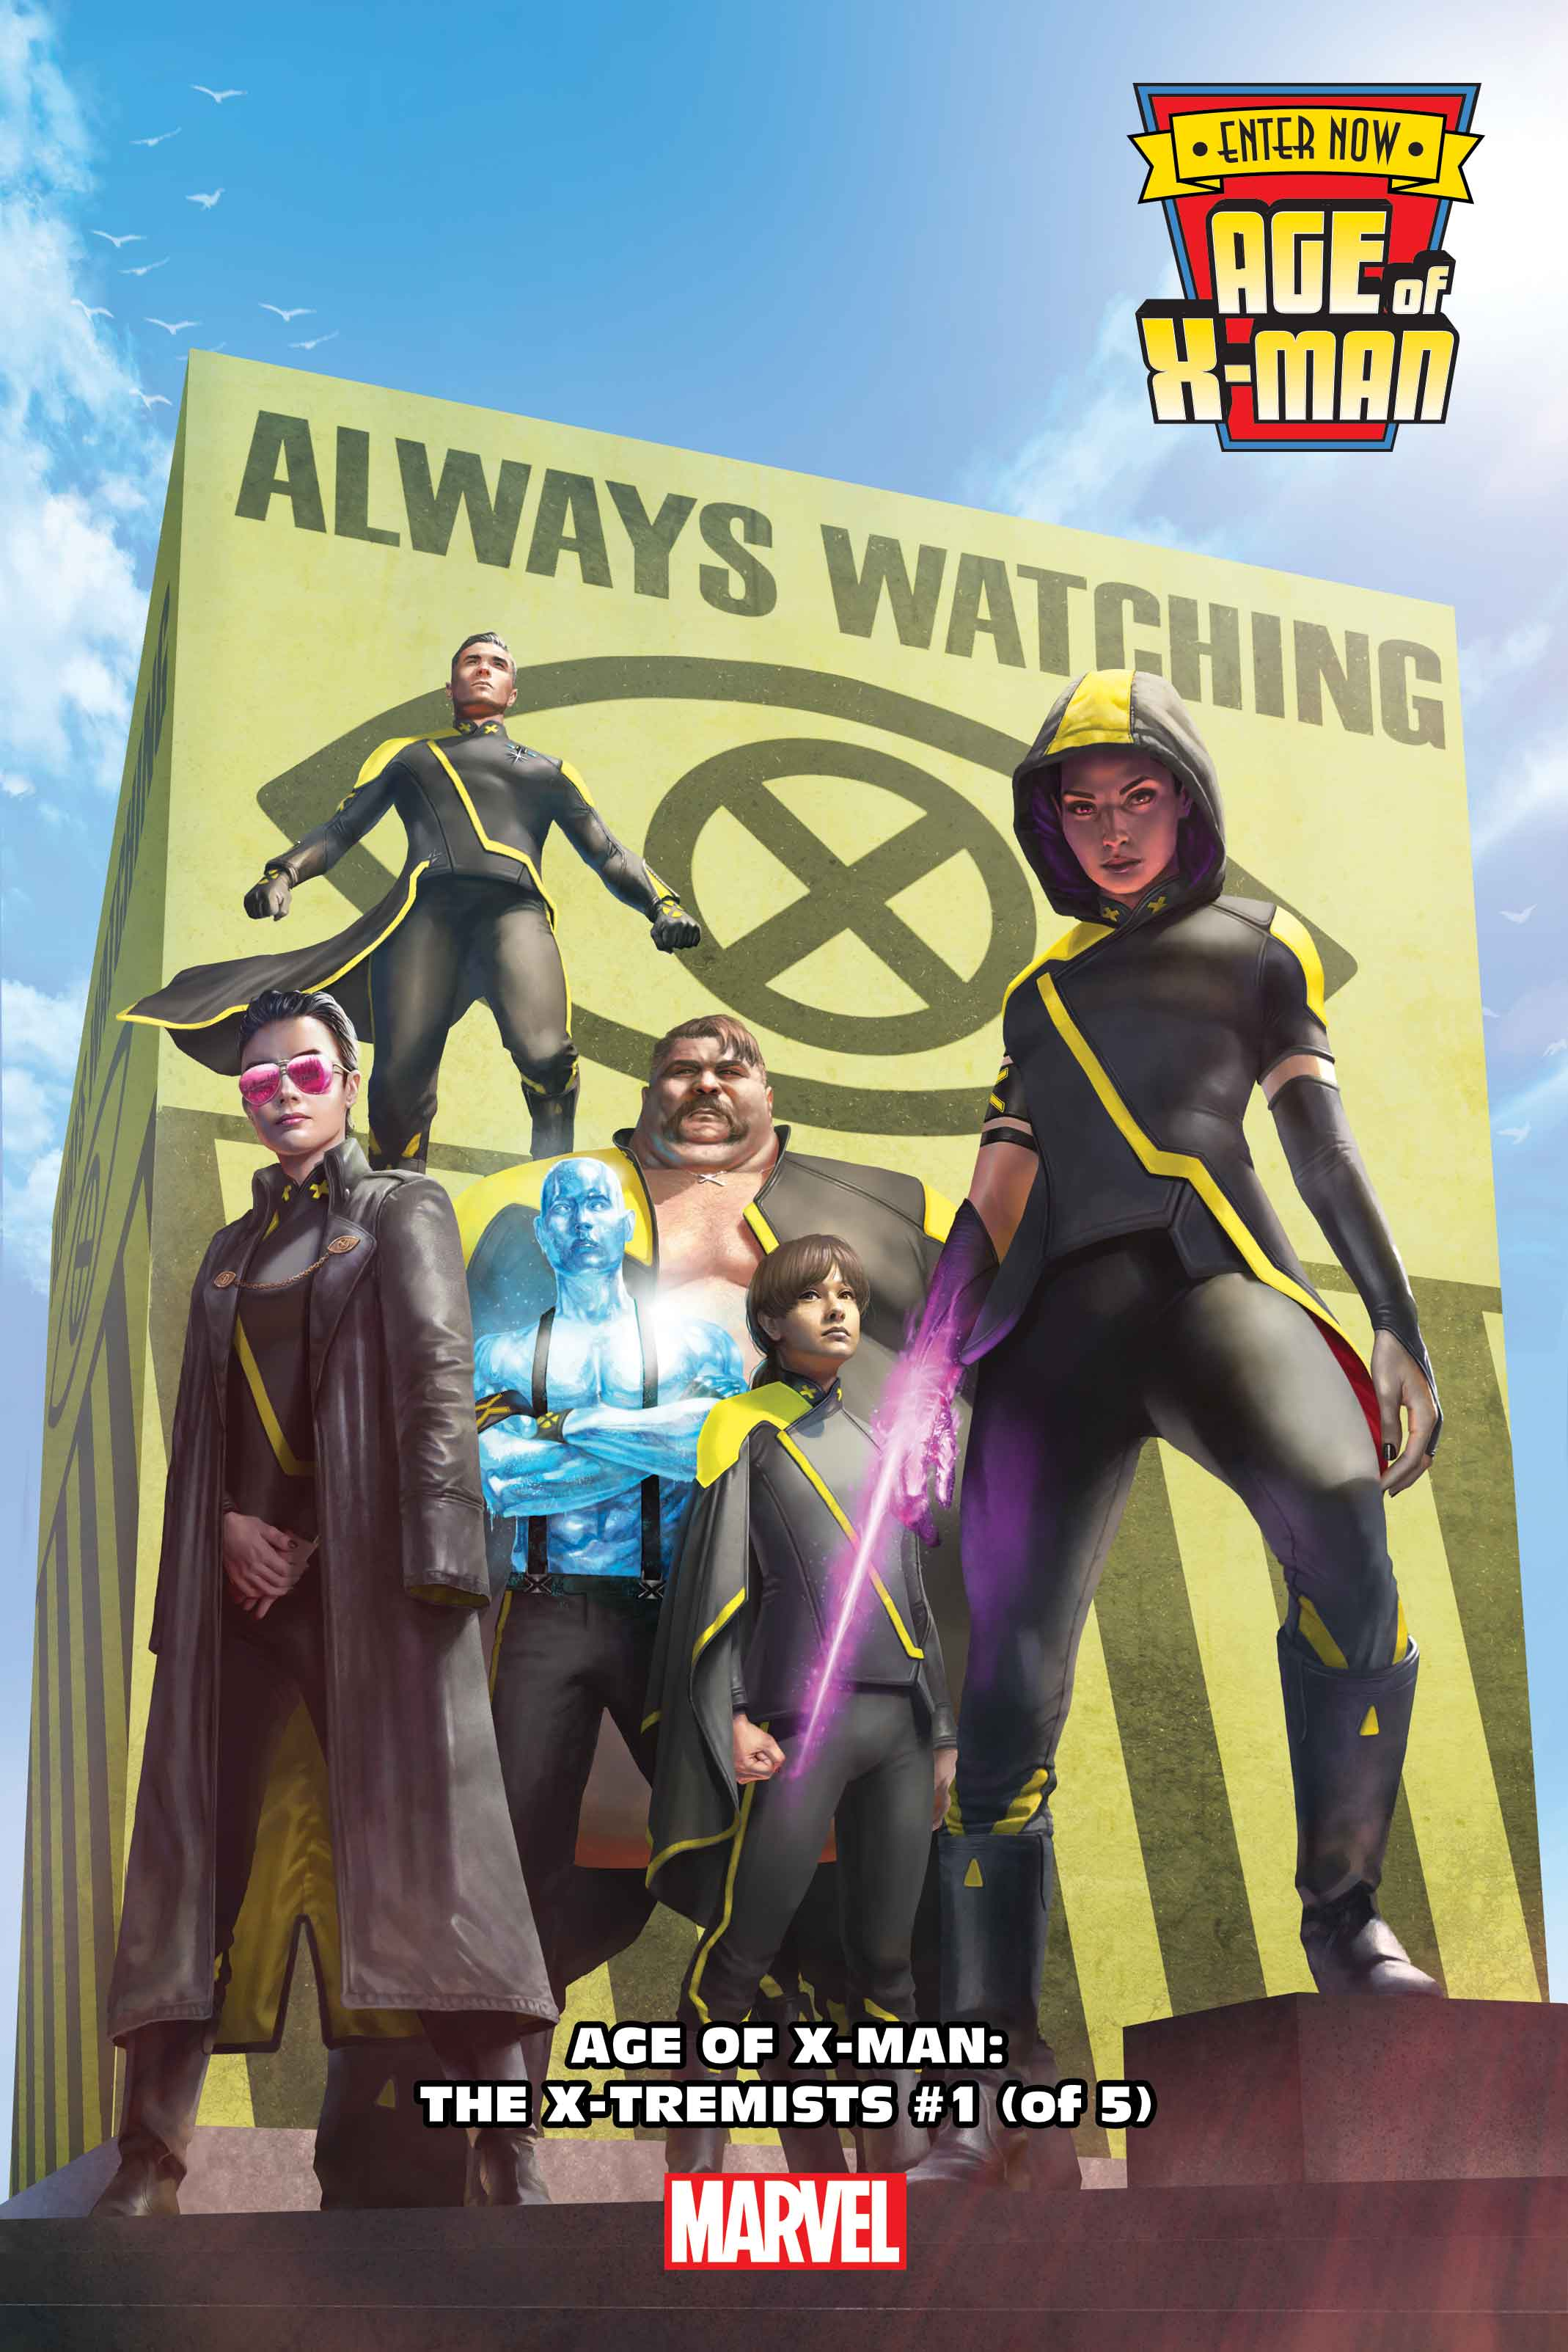 The Age of X-Man dawns…and the X-Men cannot stop it.